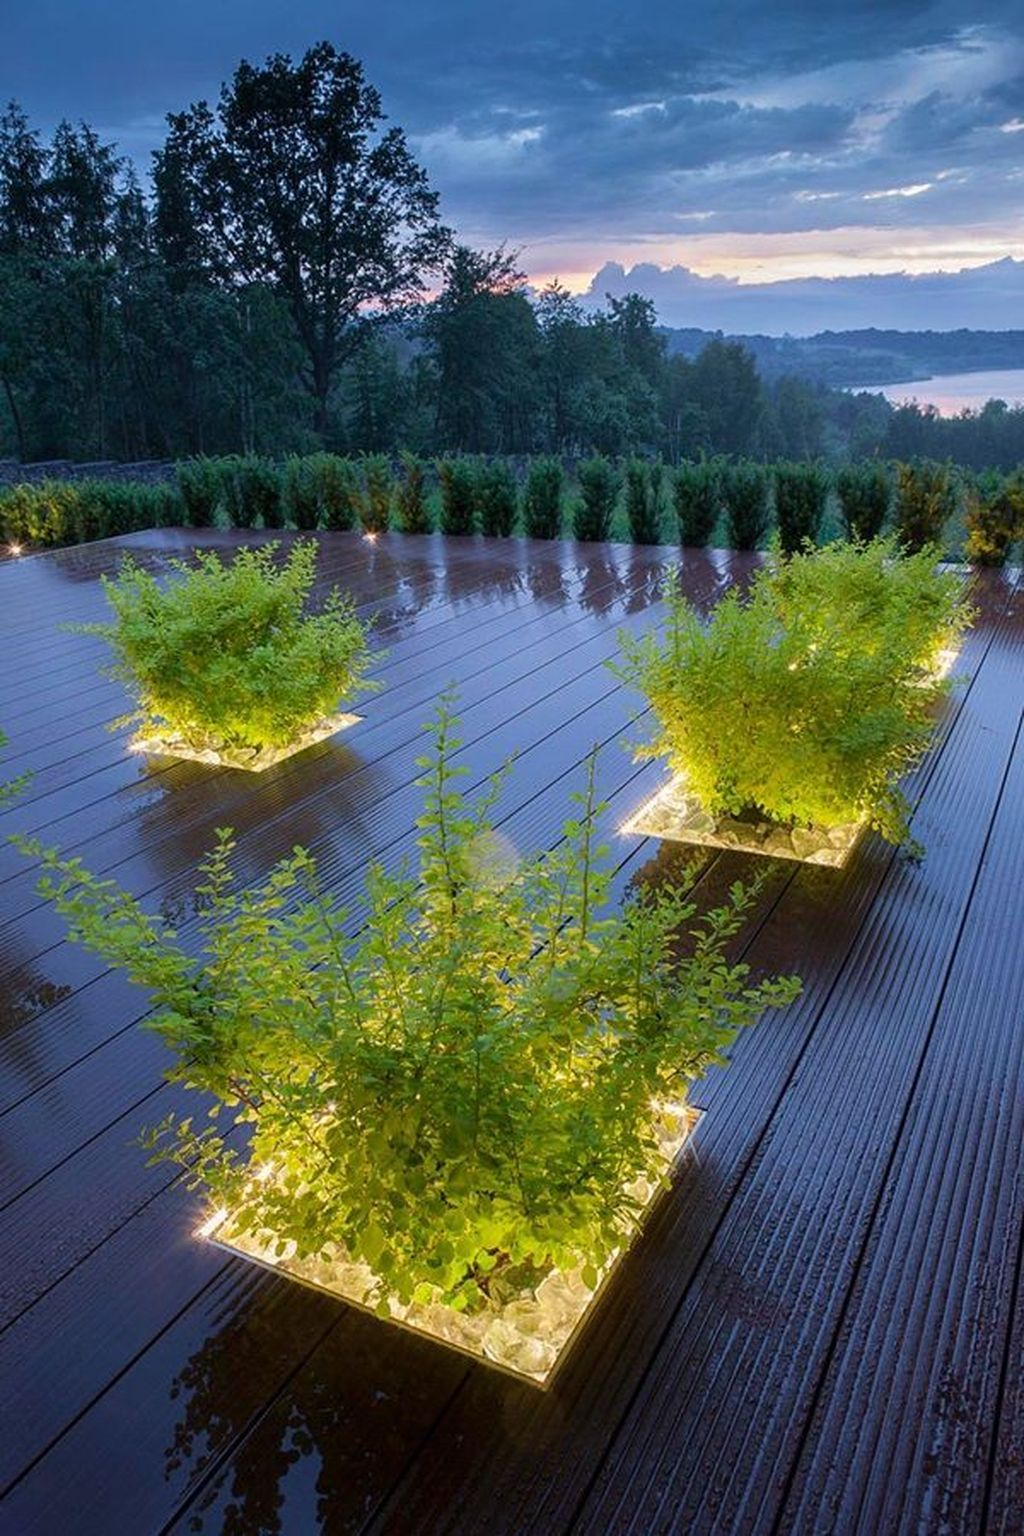 20 Gorgeous Outdoor Lighting Ideas For Your Garden With Images Garden Lighting Design Landscape Lighting Design Landscape Lighting